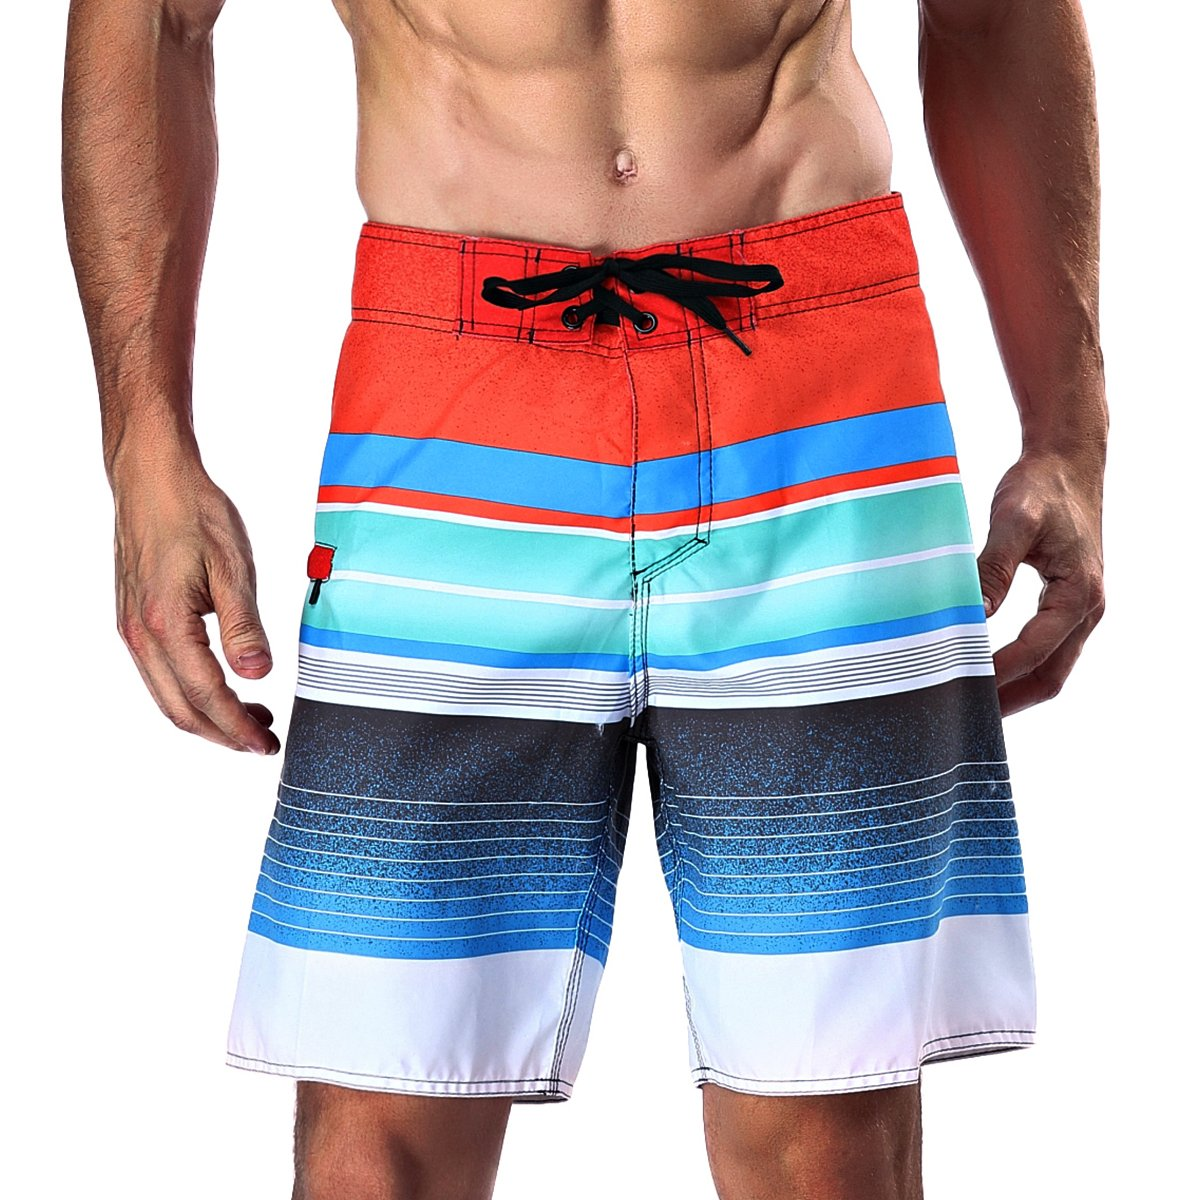 Milankerr Men's Stripe Boardshort